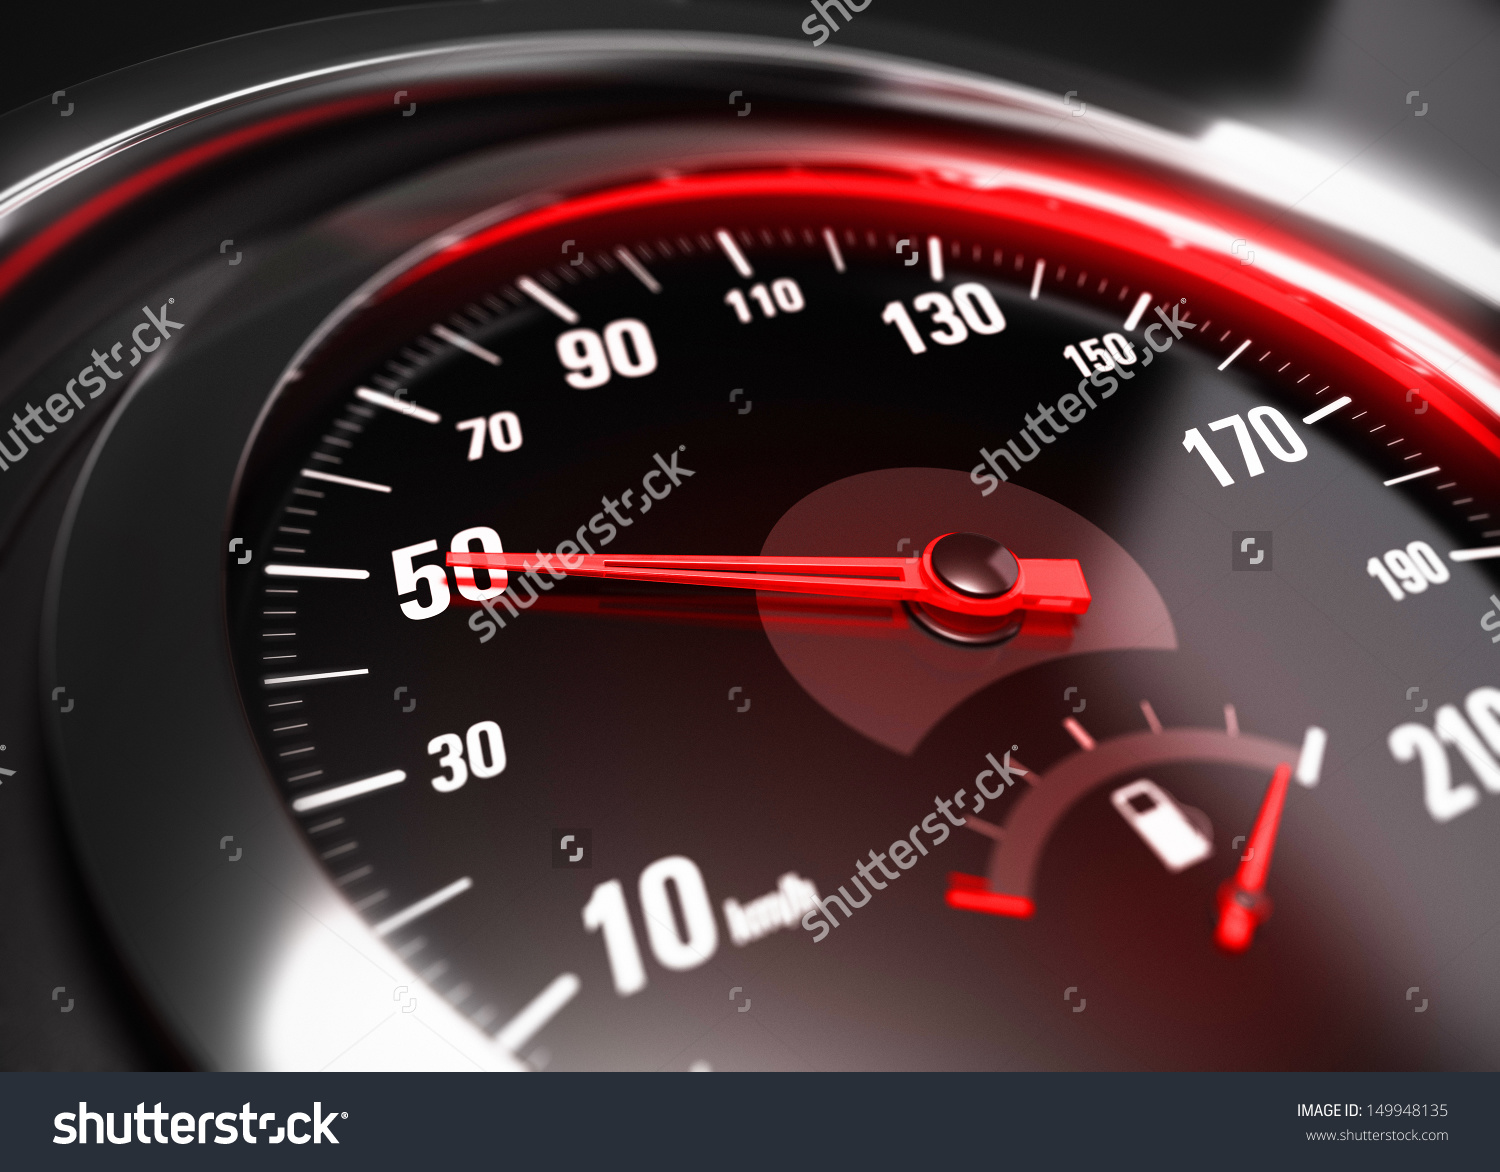 Car speedometer clipart 60 picture transparent download Car speedometer clipart 60 - ClipartFest picture transparent download